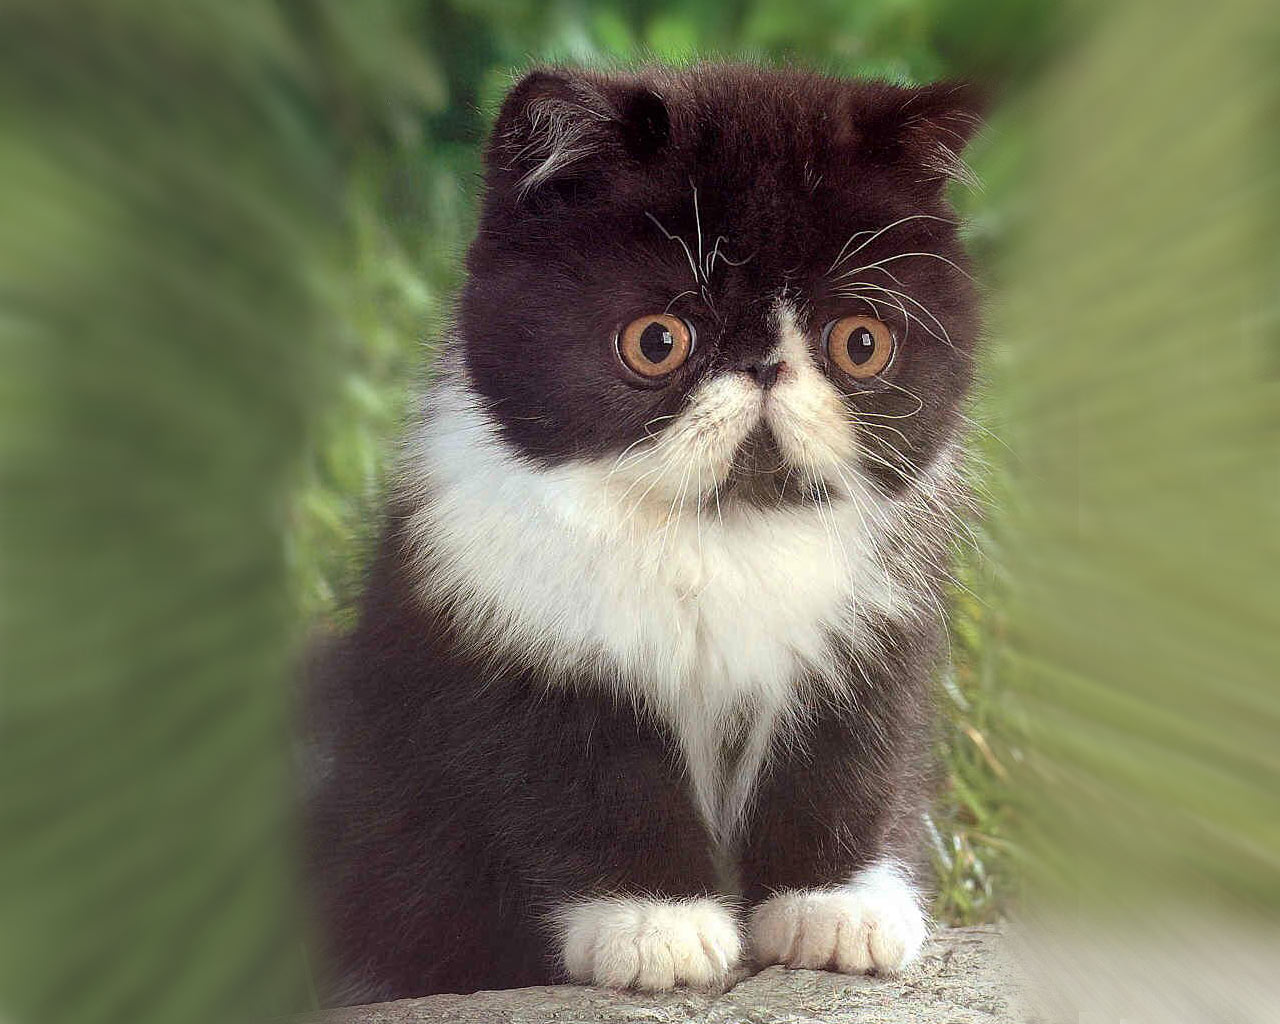 Cute Kittens   Pictures   The Wondrous Pics 1280x1024